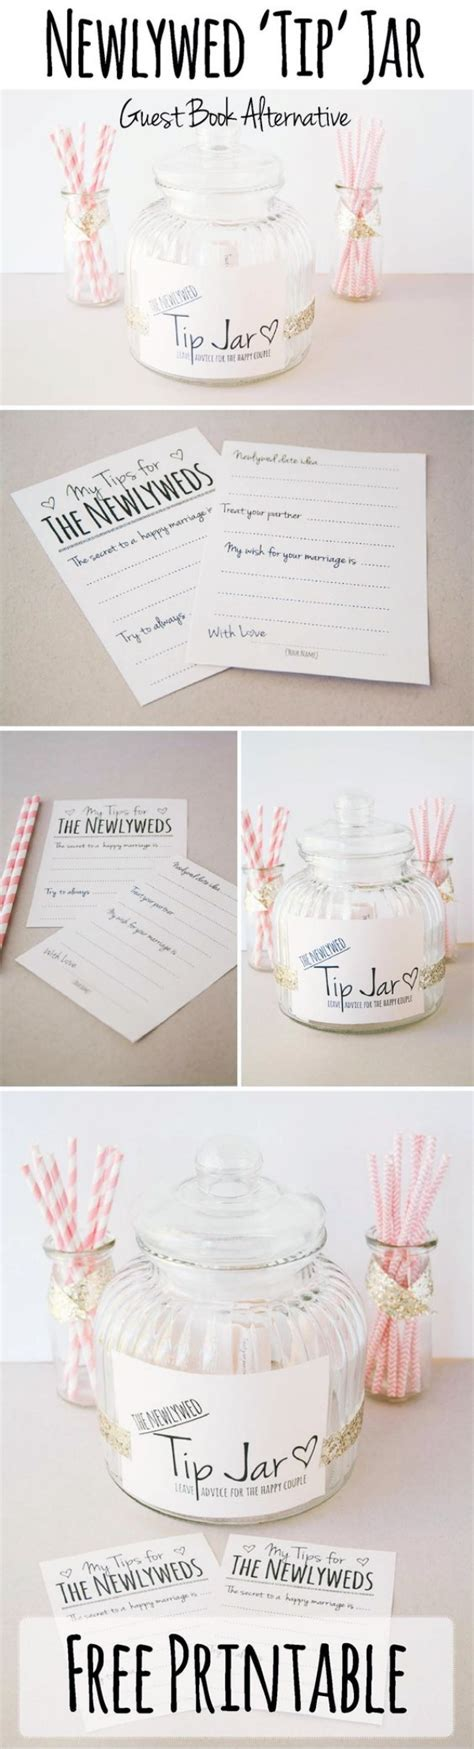 where do you write and guest on wedding invitation 25 sweet and memorable wedding guest book ideas bored